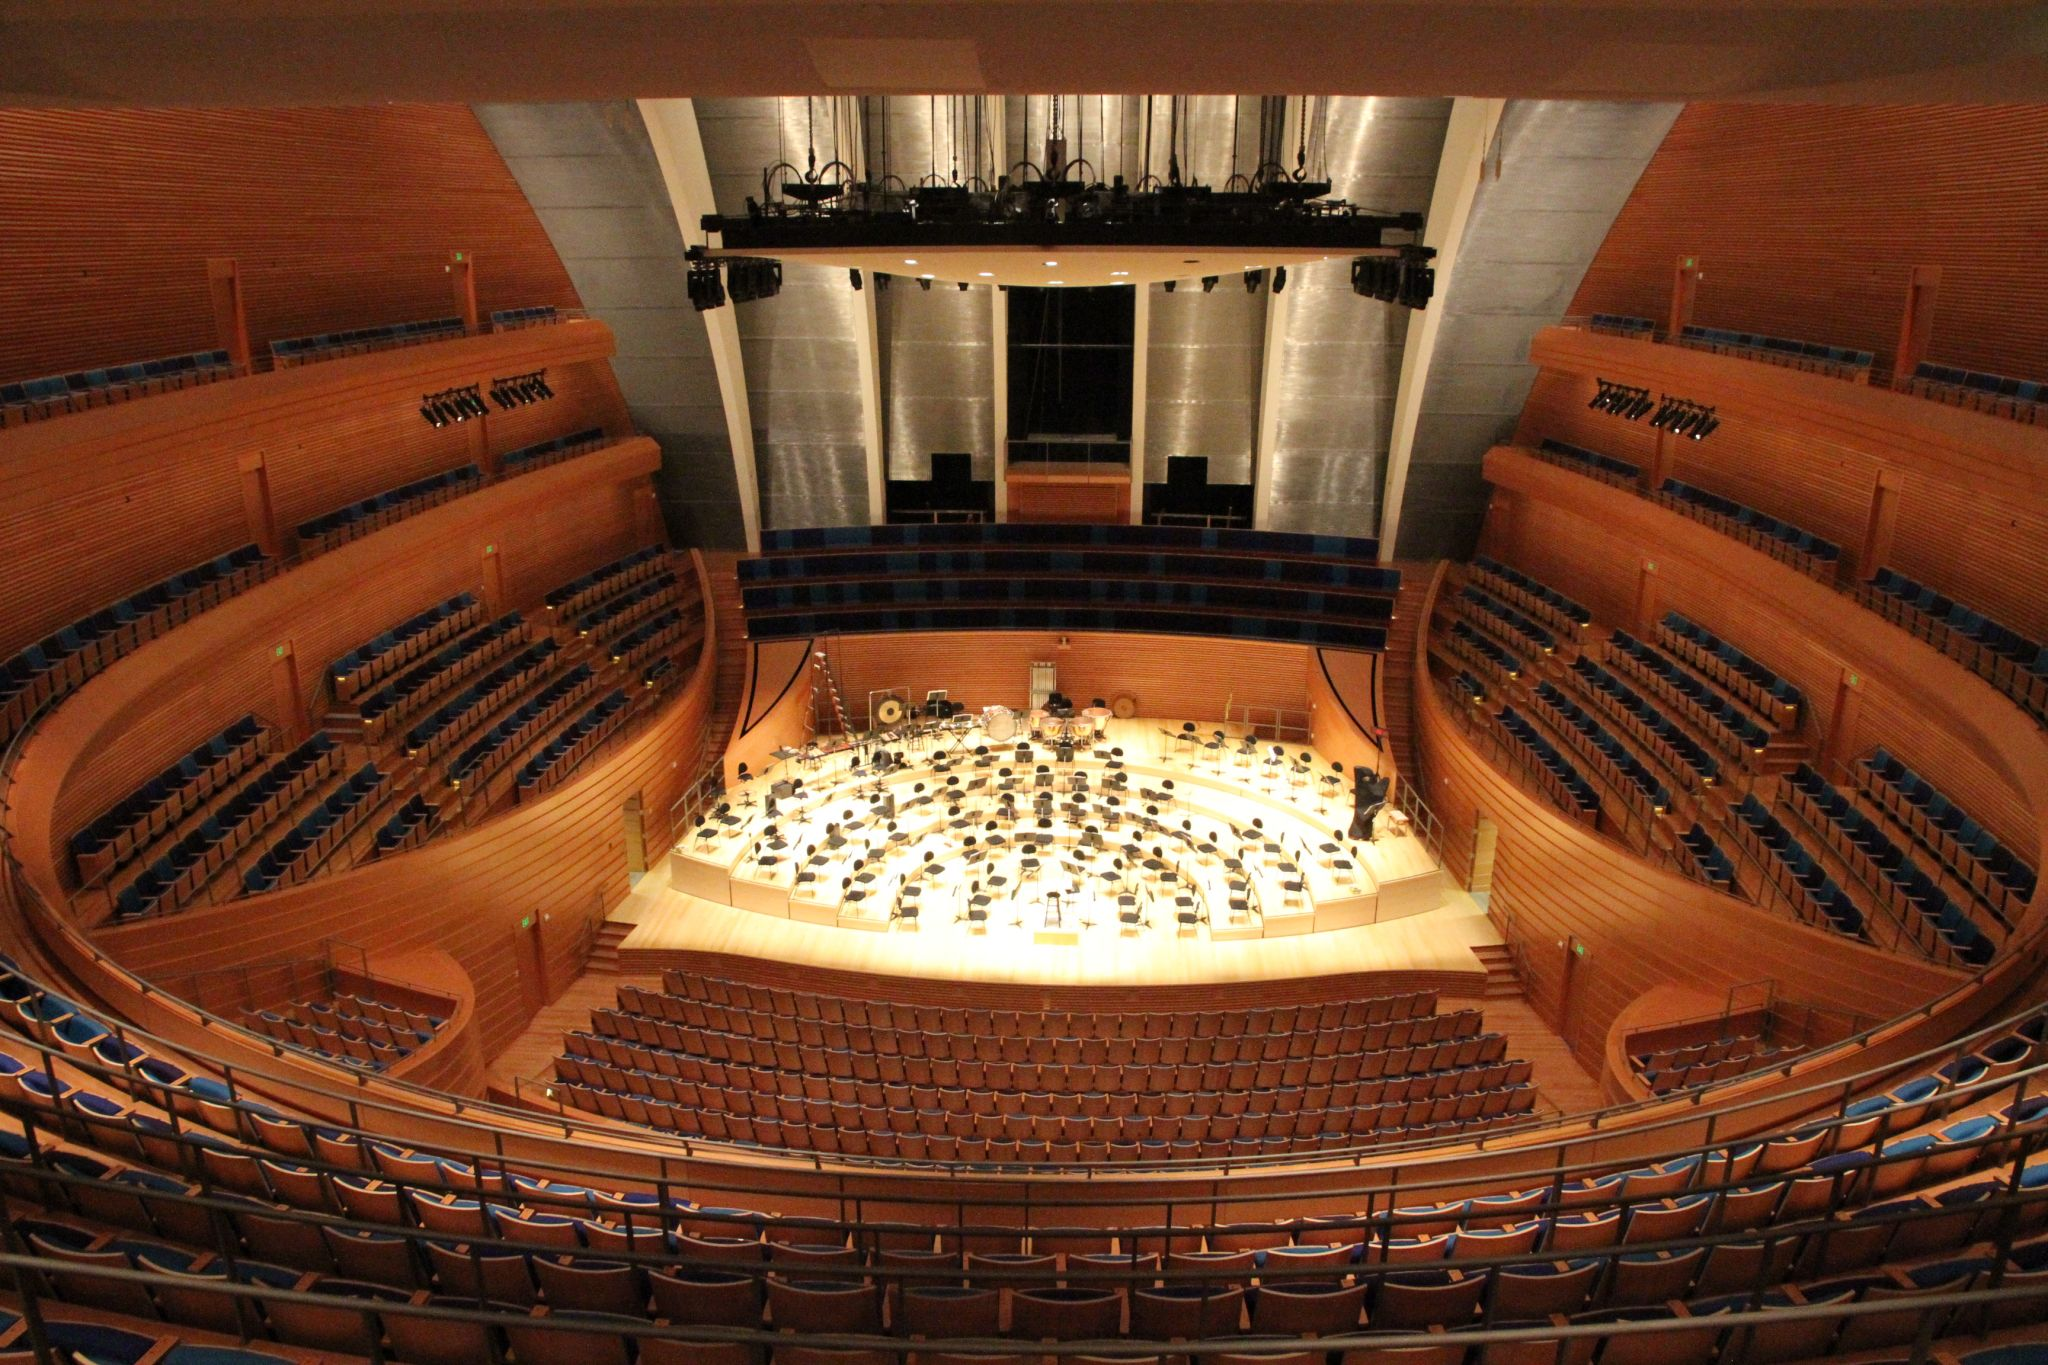 Shapes and sounds designing concert halls with curves for Design in a box interior design